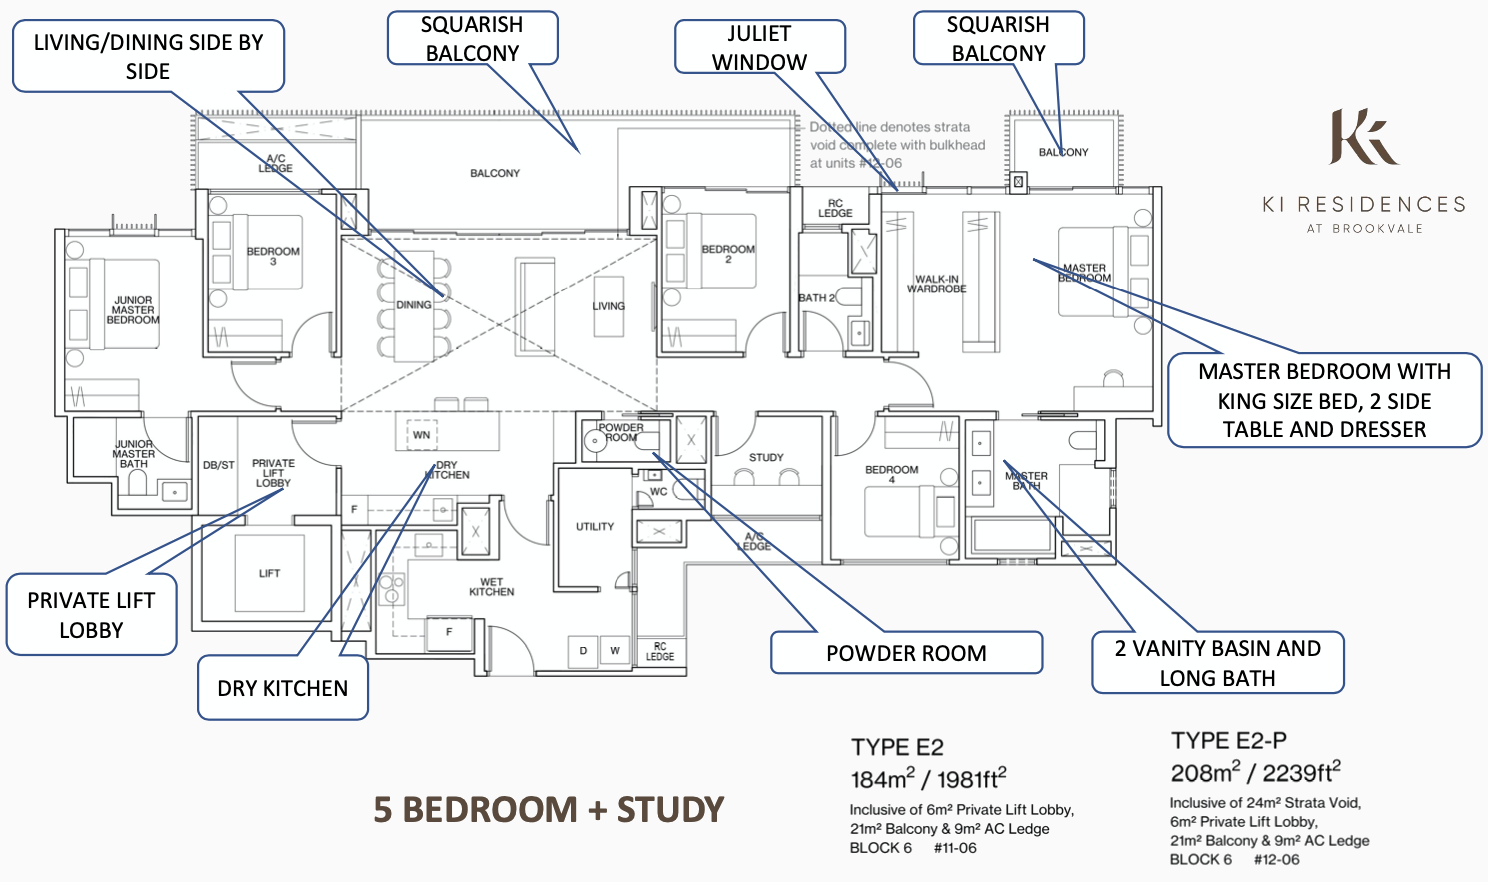 Ki Residences Floor Plans . 5 Bedroom + Study Type E2